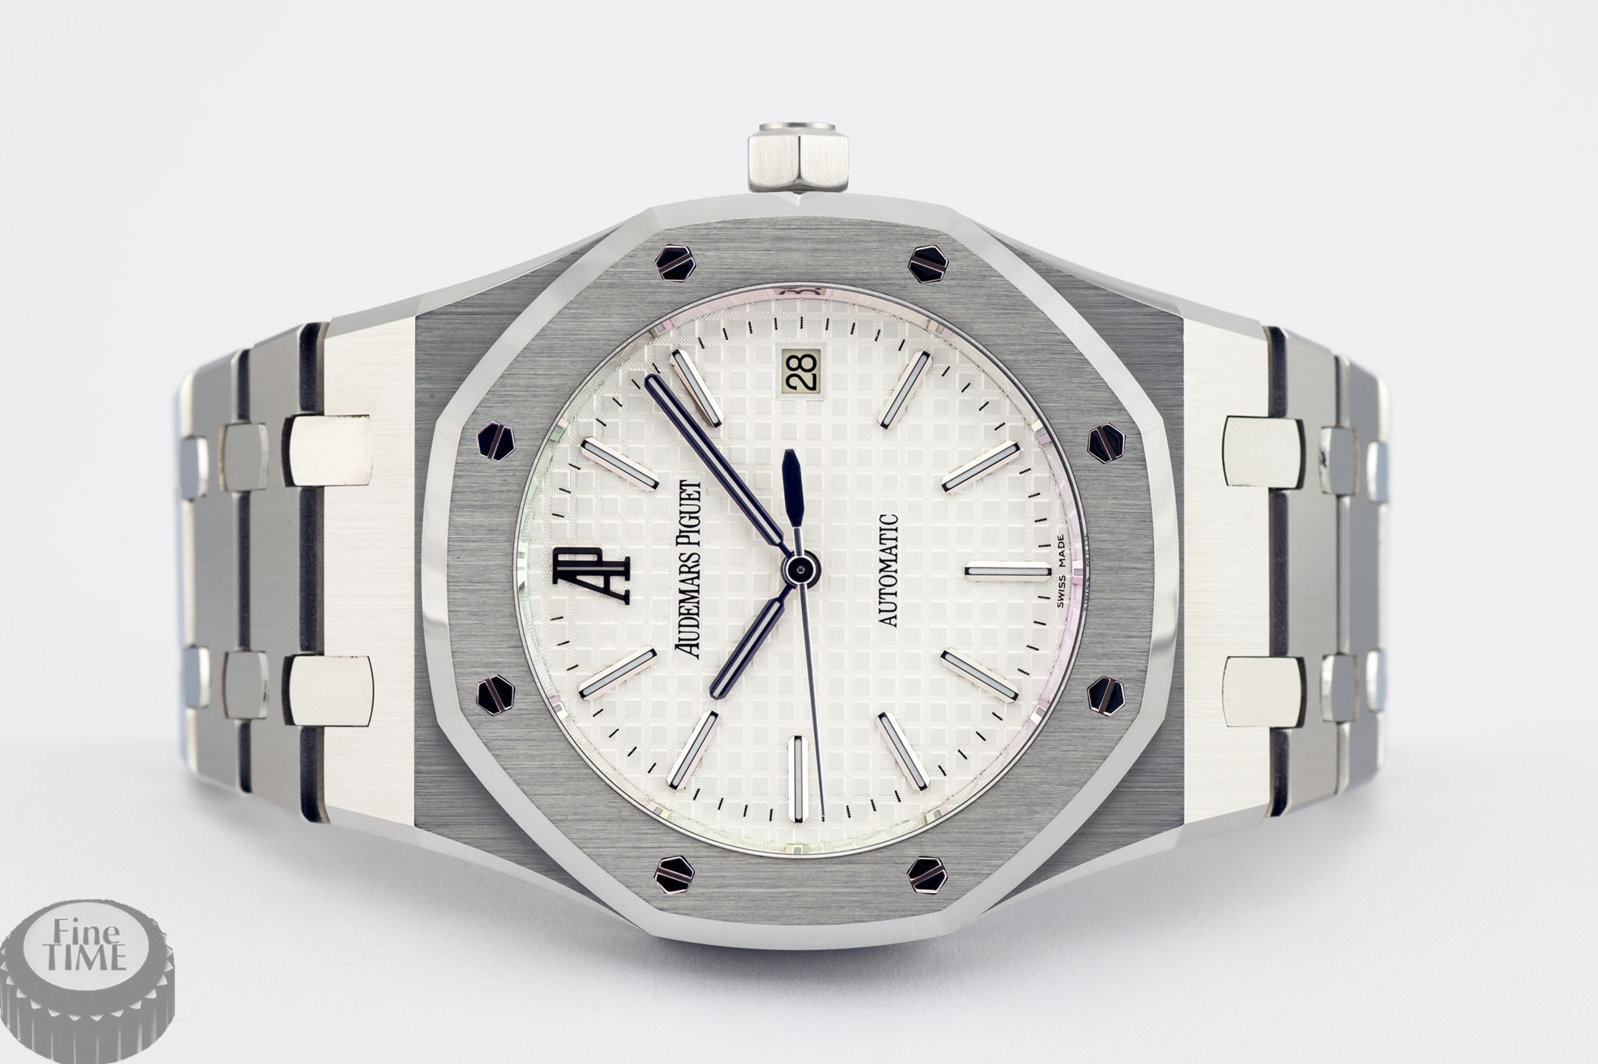 audemars-piguet-royal-oak-date-15300st-oo-1220st-01-01.jpg